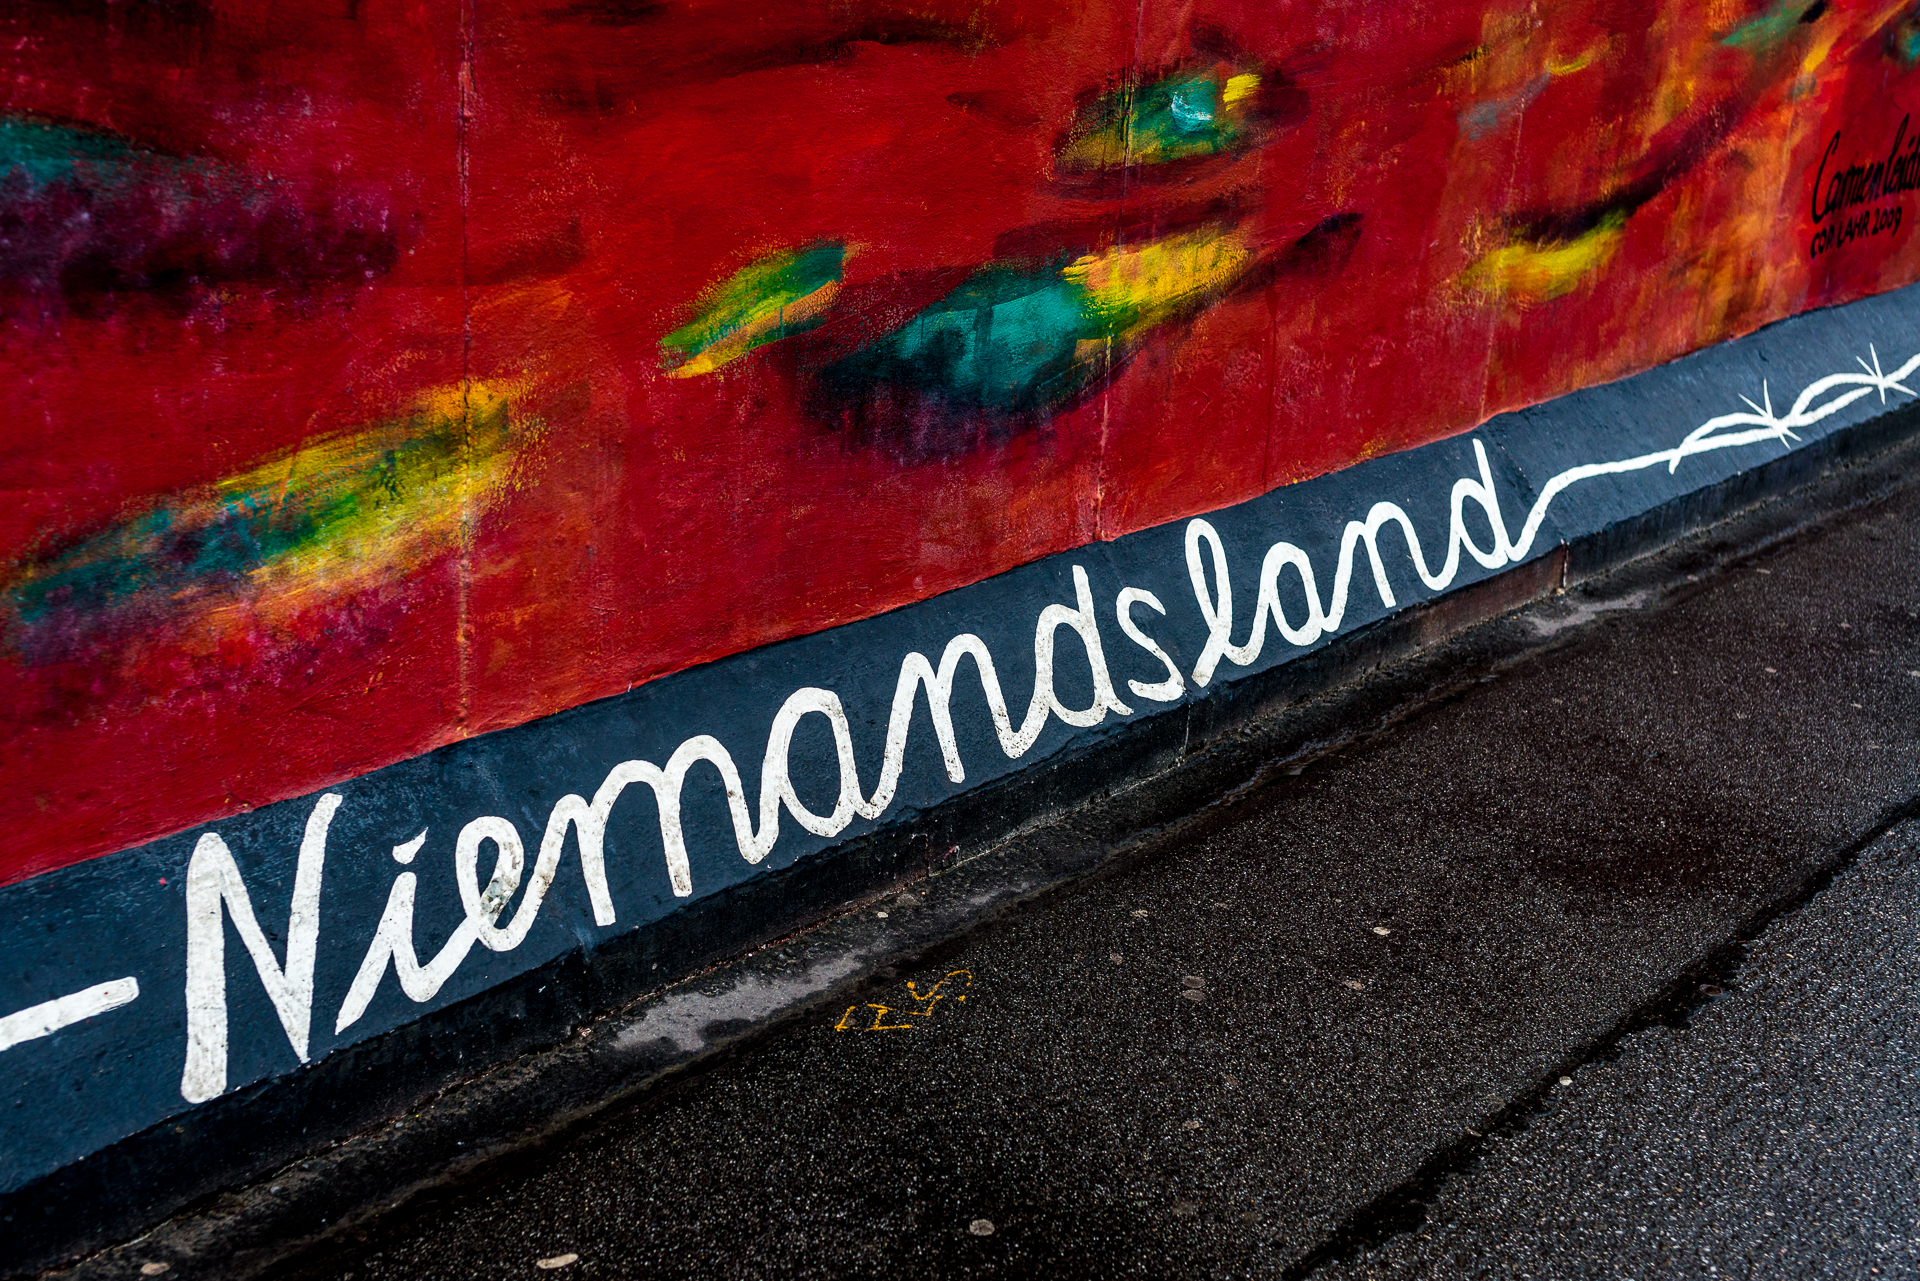 """German word """"Niemandsland"""" painted in white on black background on the East Side Gallery in Berlin, Germany. It translates to """"No mans land"""" in English."""